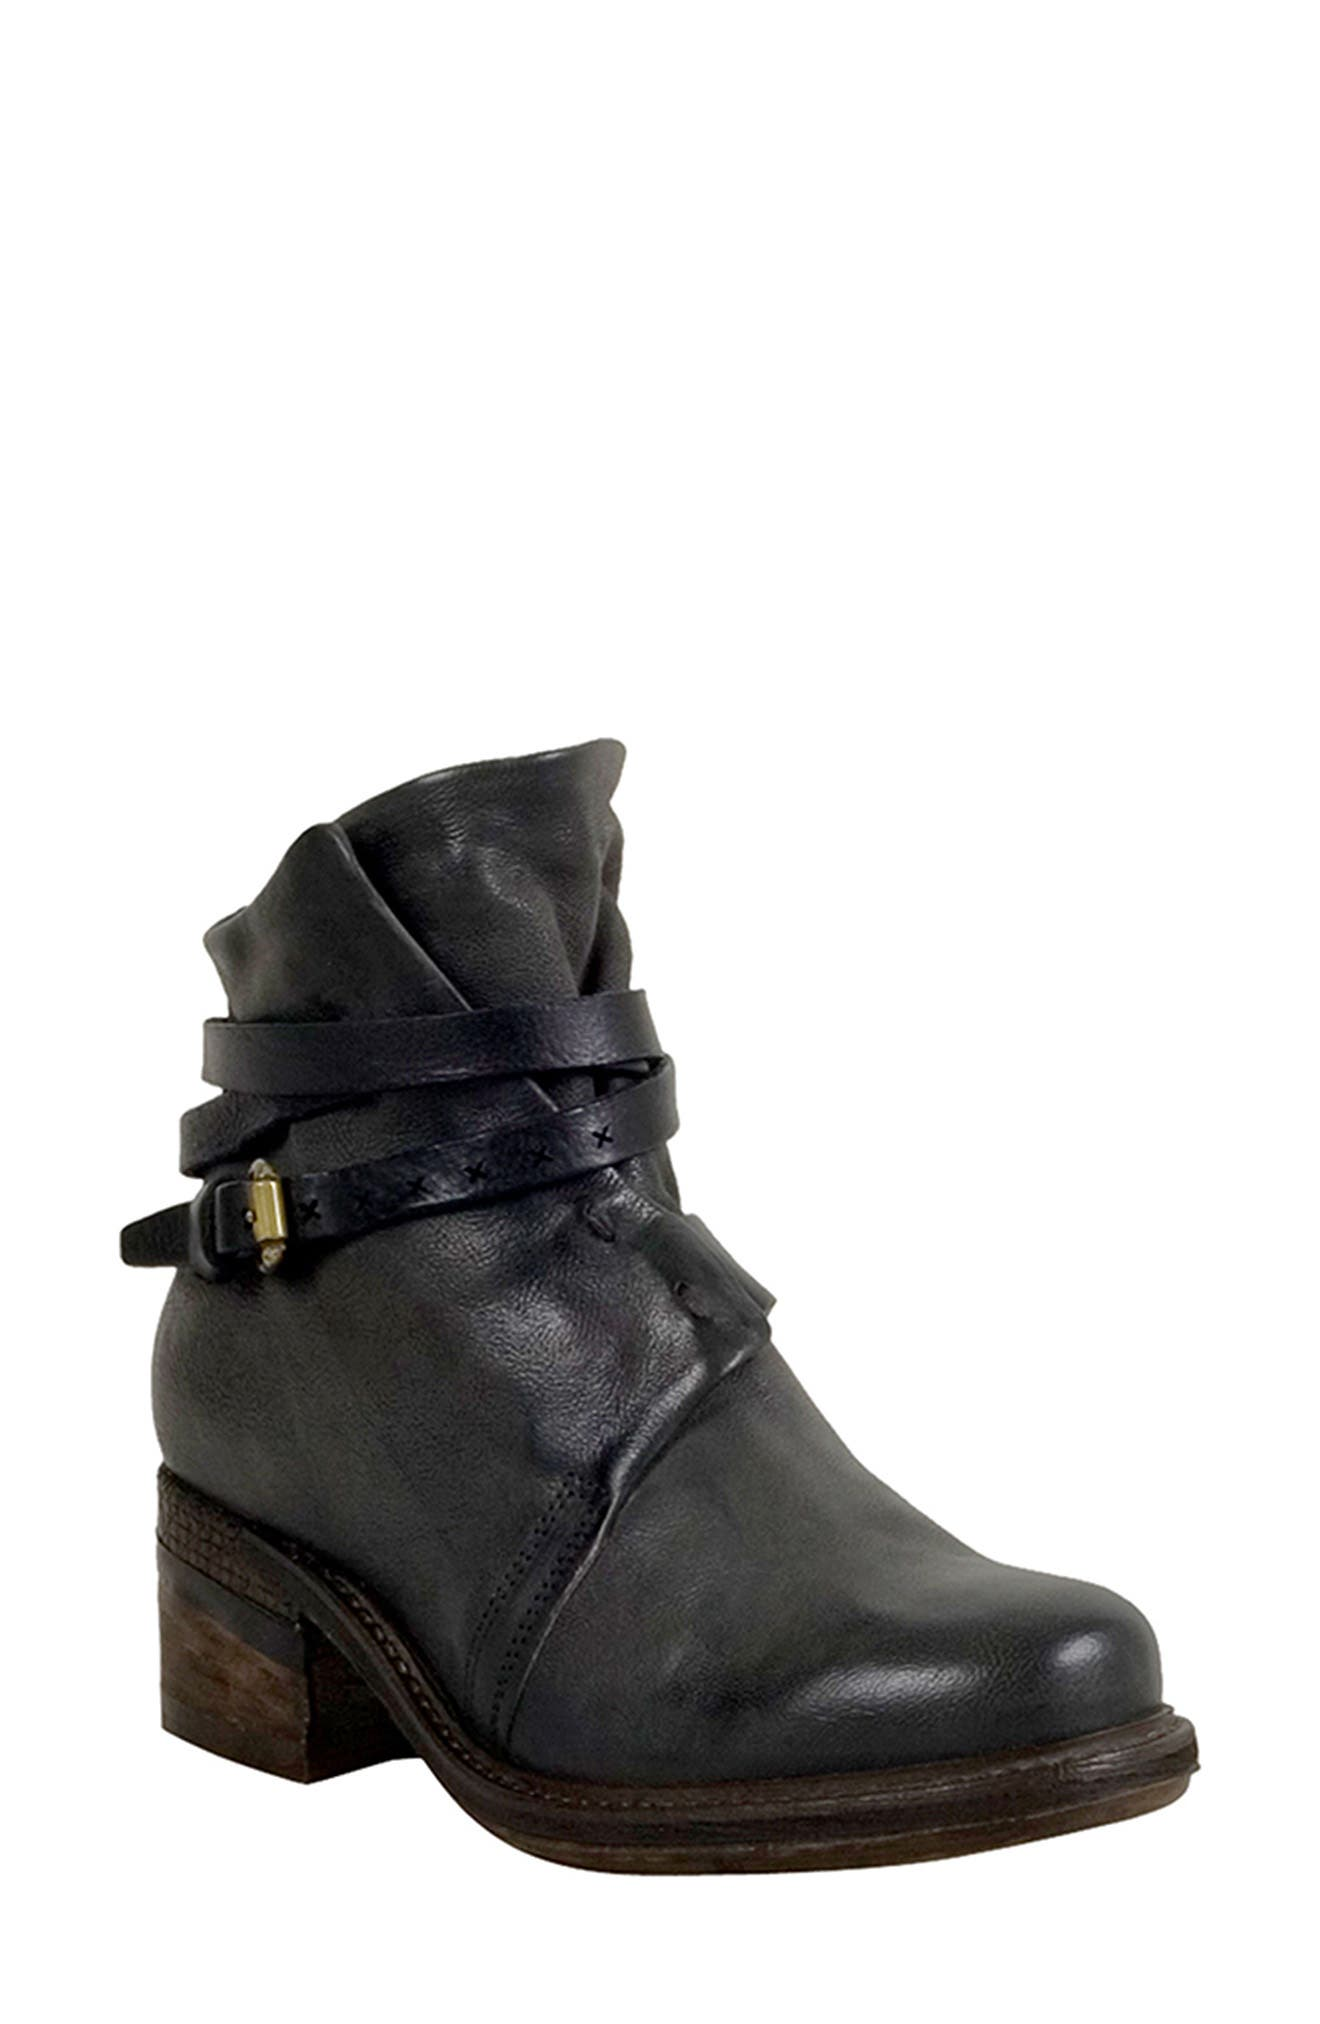 Alternate Image 1 Selected - A.S. 98 Norman Boot (Women)